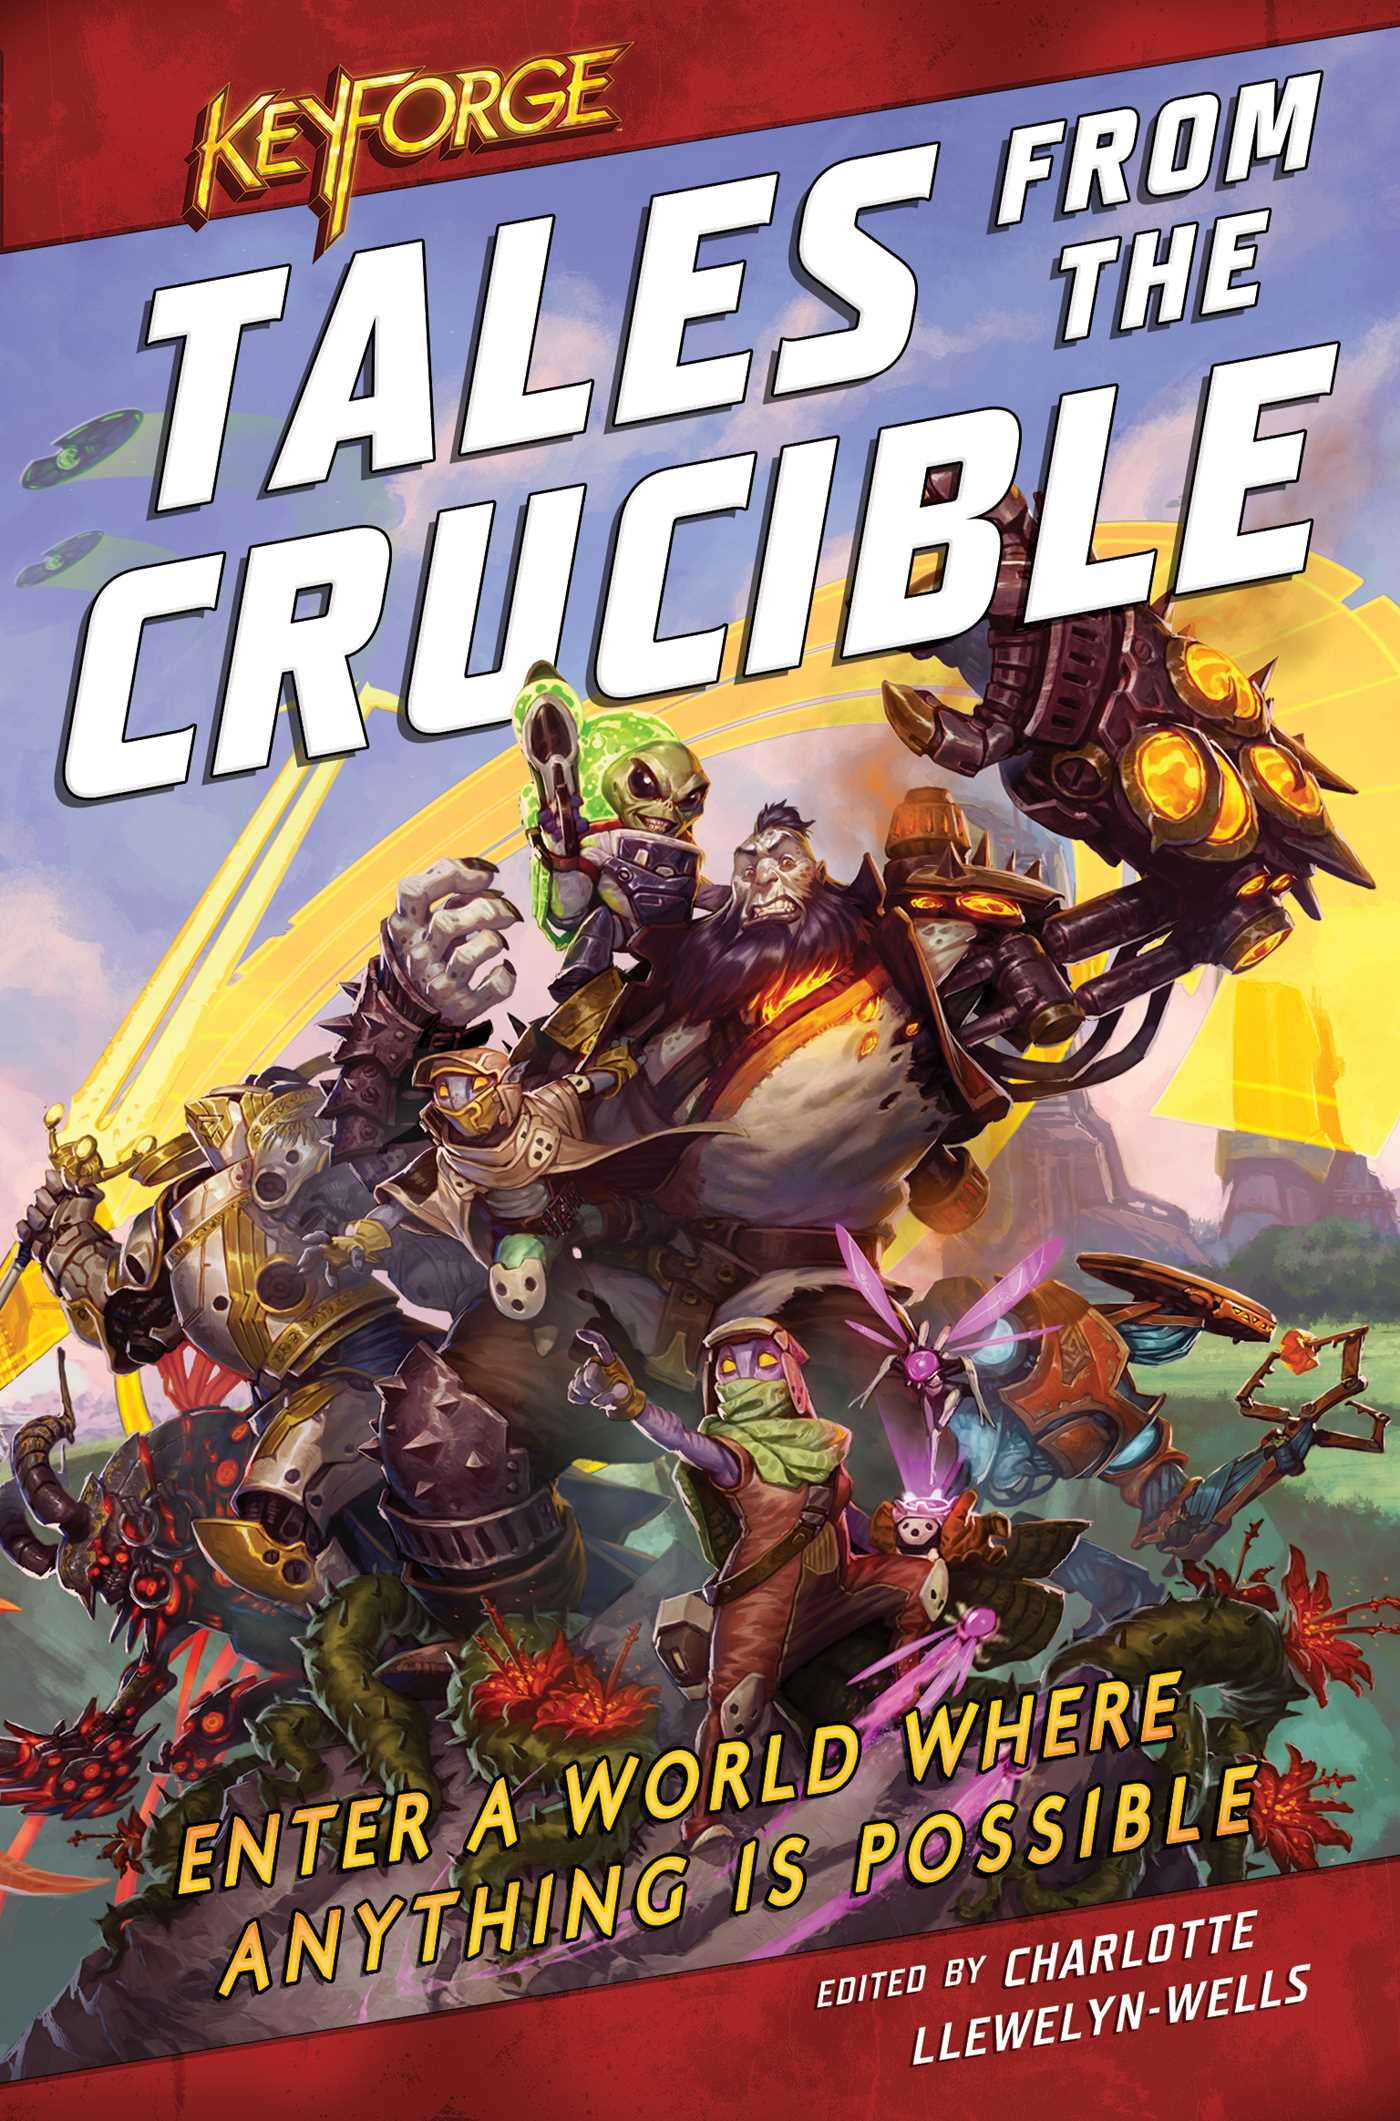 KeyForge: Tales From the Crucible